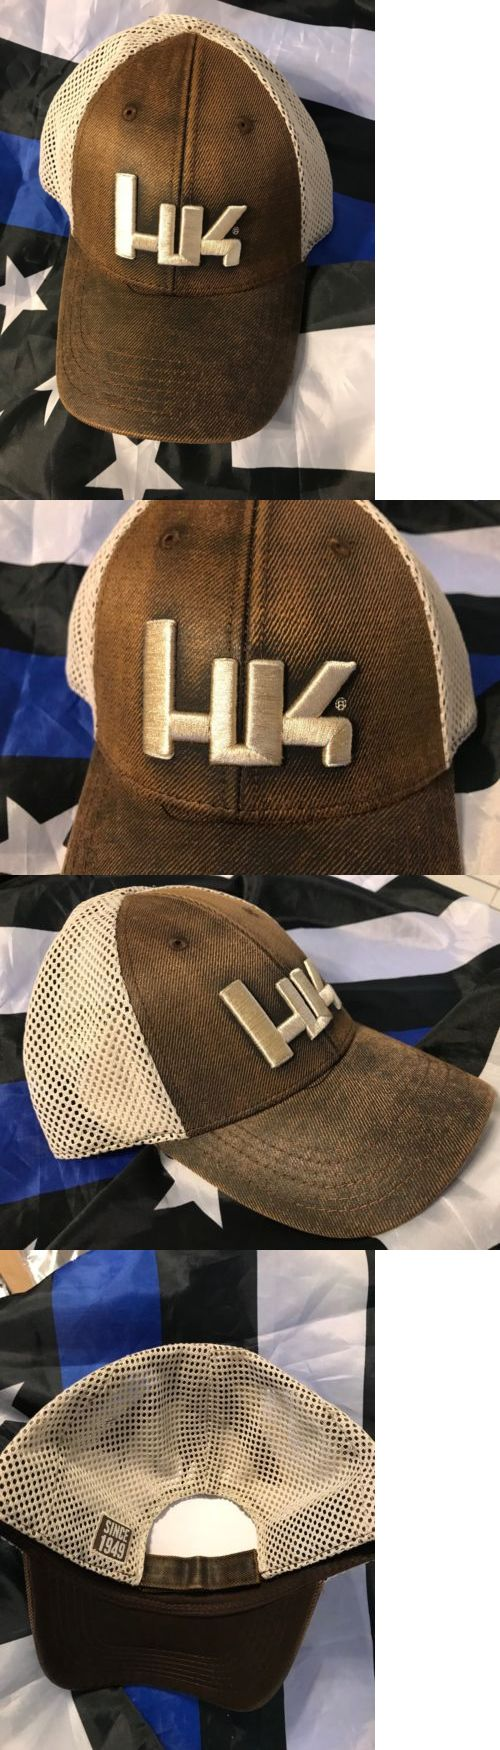 Hats and Headwear 159035: Heckler Koch Brown Hk Mesh Cap Hat Embroider Hk P7 Psp P7m8 P30 Usp Mark23 Vp9 -> BUY IT NOW ONLY: $32.95 on eBay!